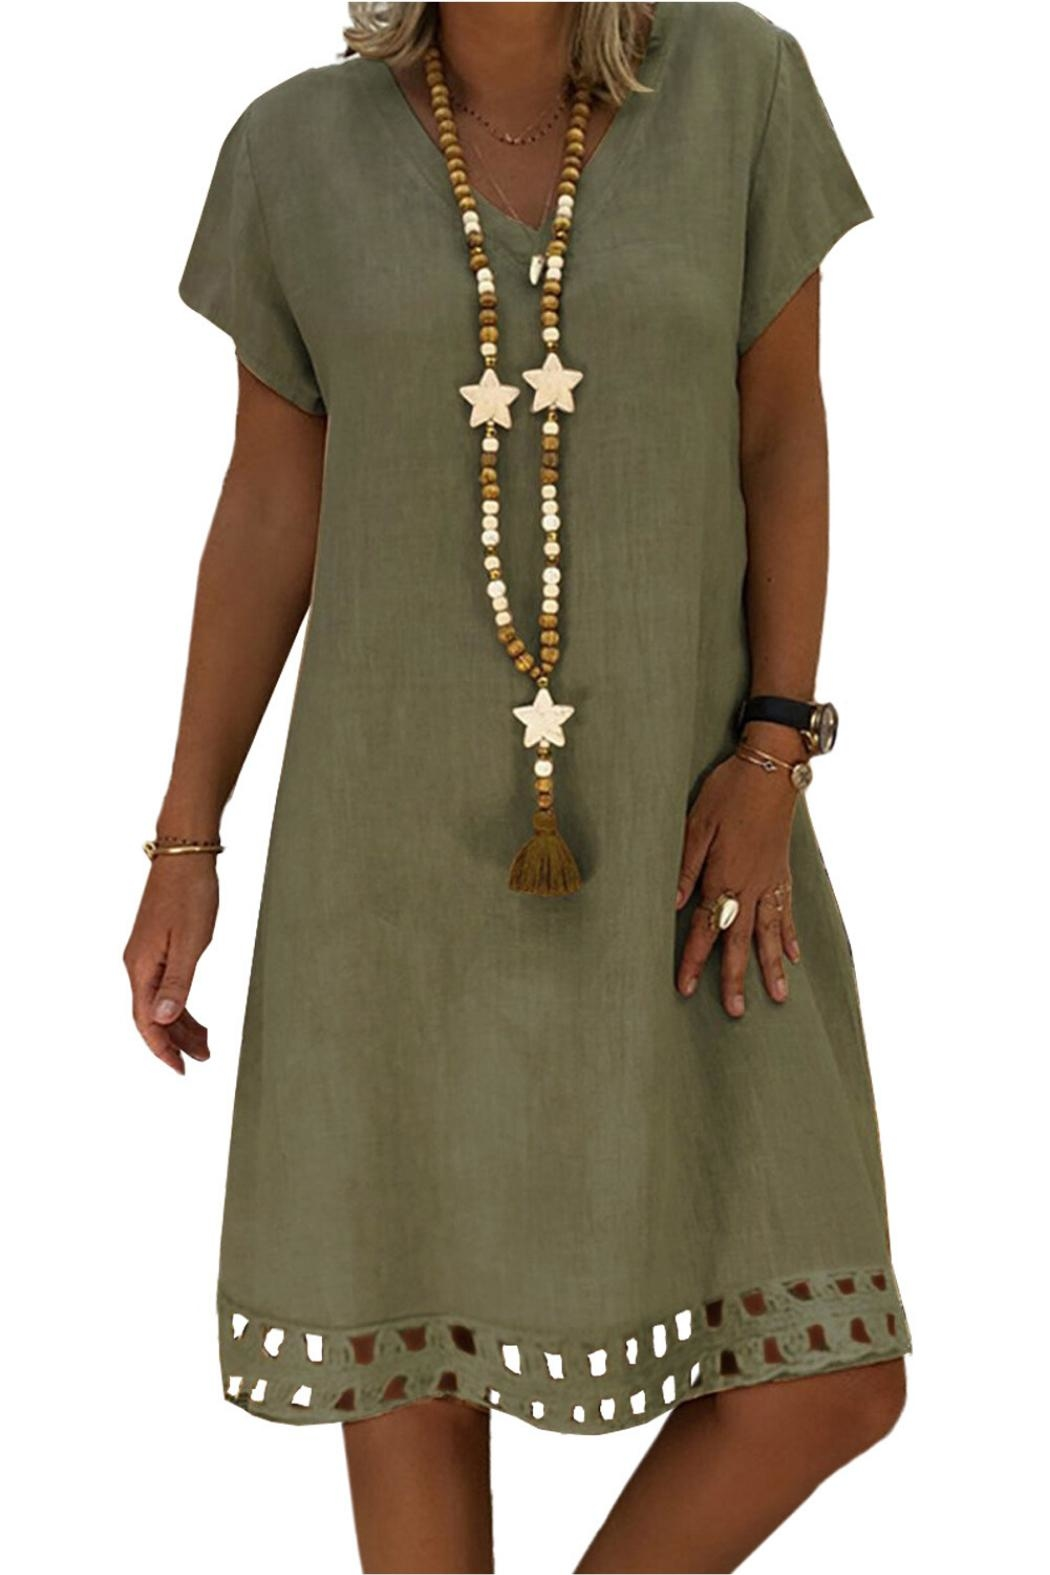 Unbranded Green A-Line Dress - Main Image